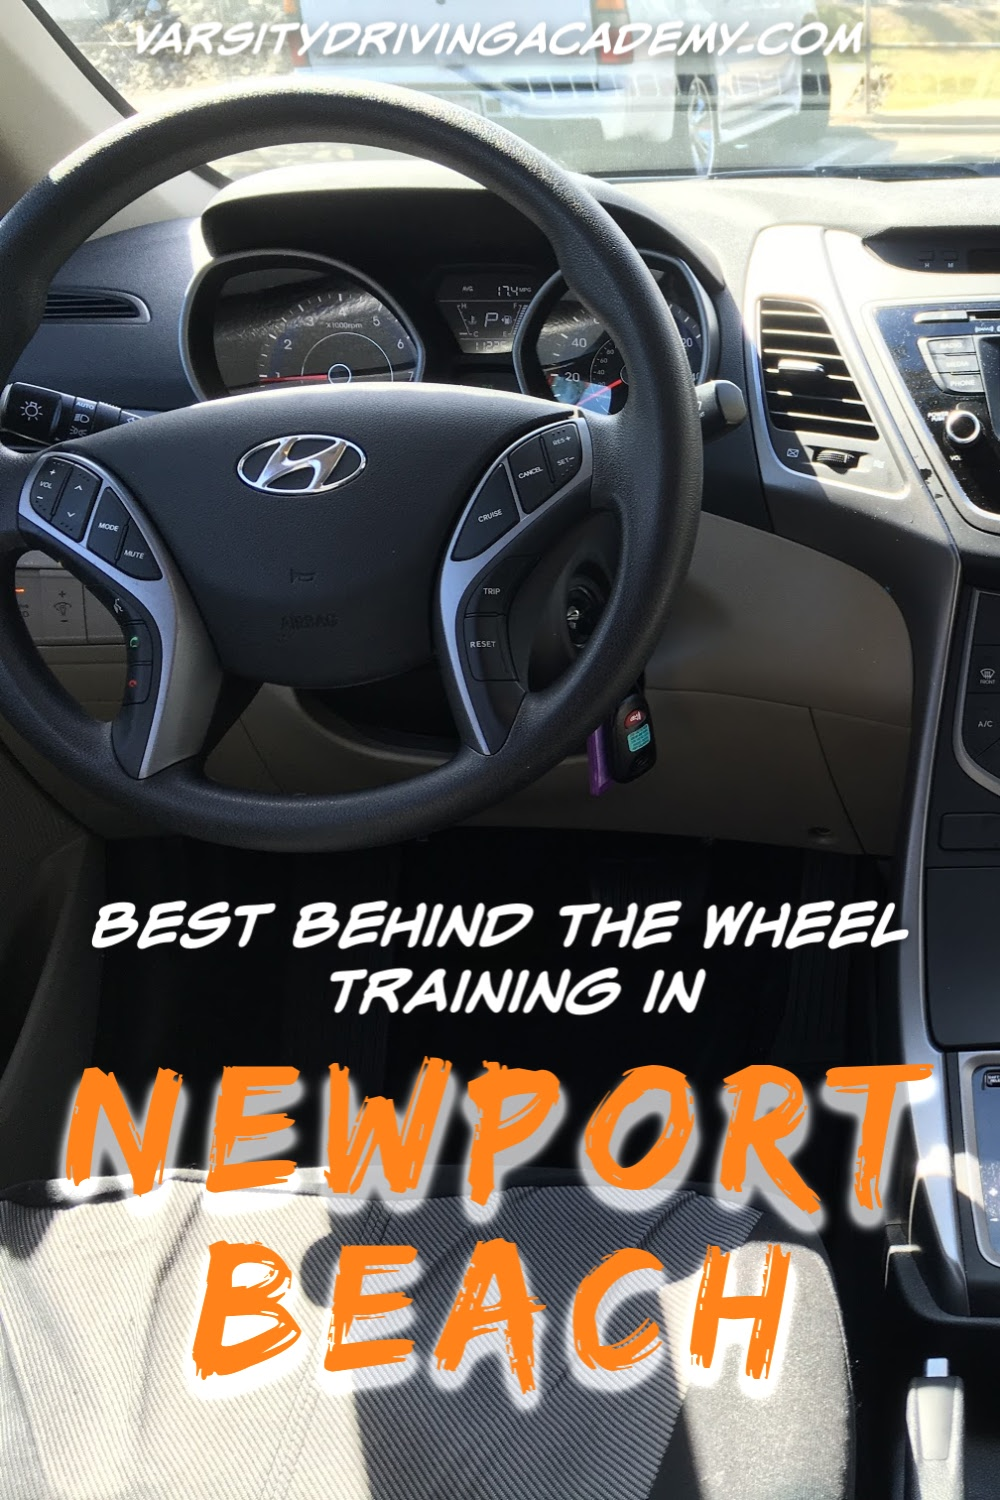 You can sign up for the best Newport Beach behind the wheel training with Varsity Driving Academy and learn how to drive safely.